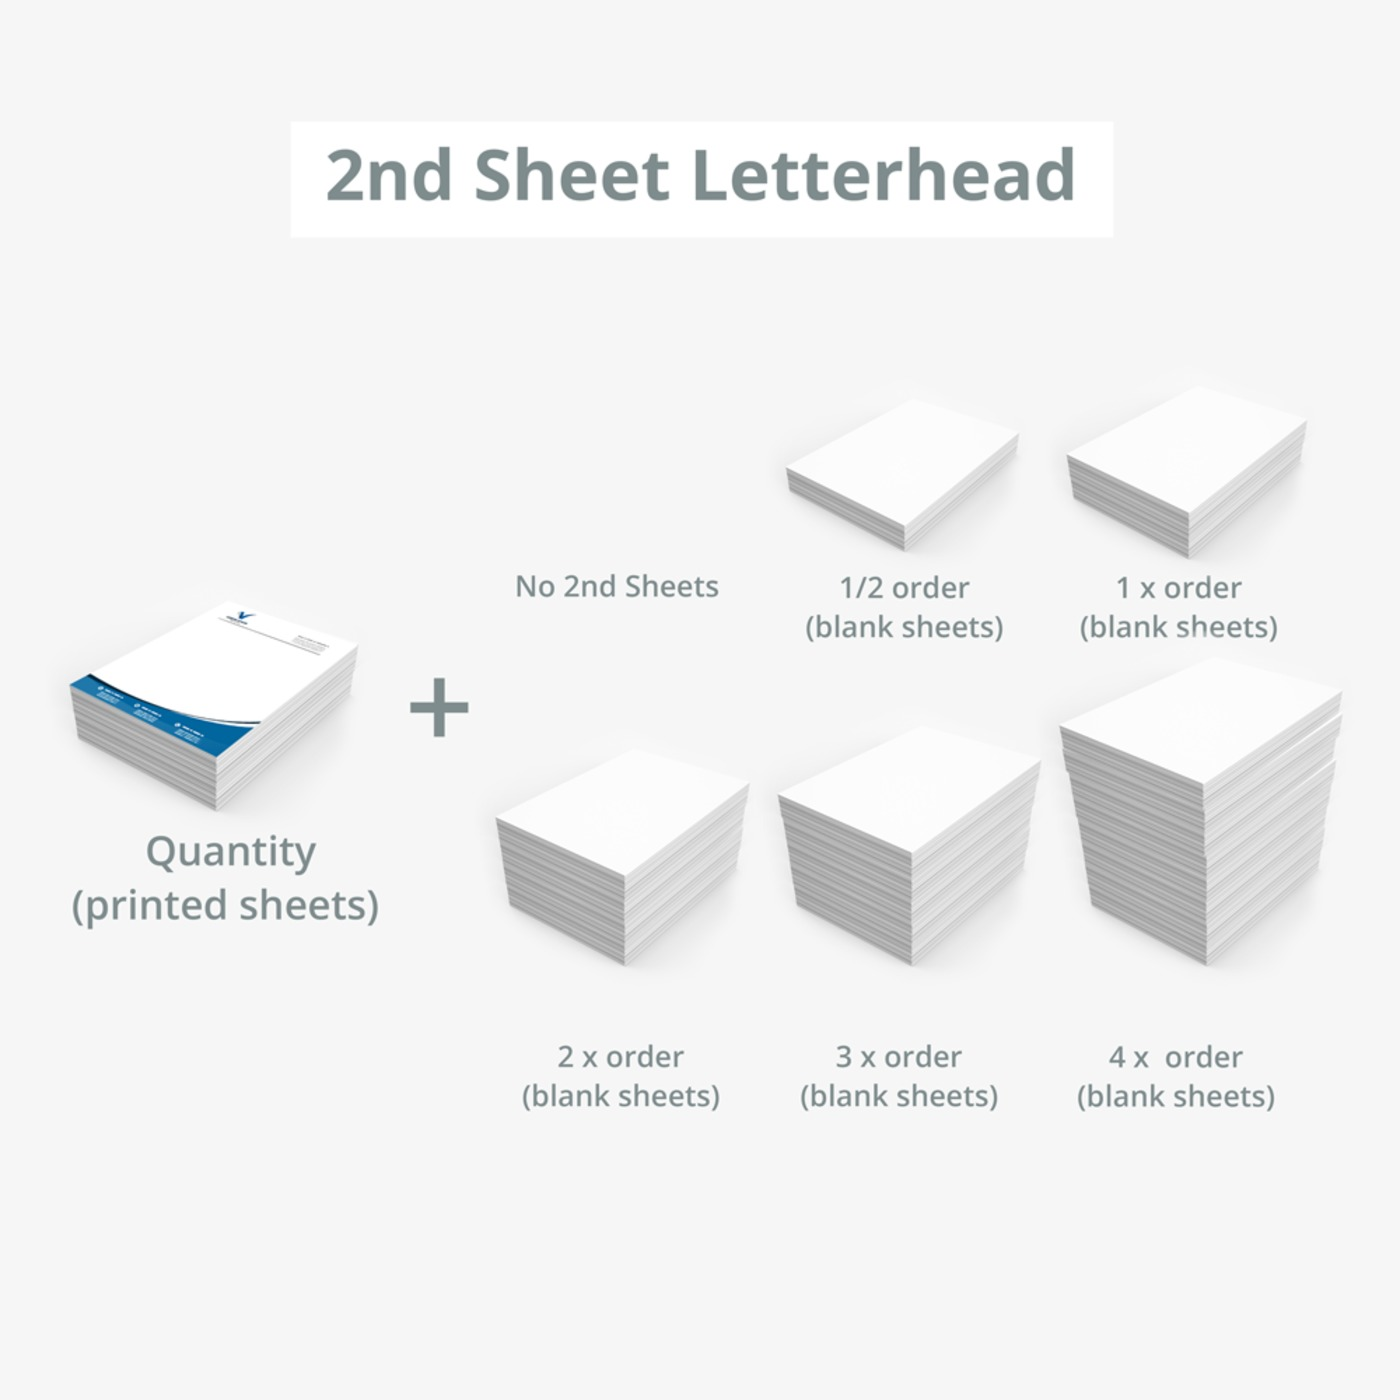 48 hour print templates - from the desk of letterhead santa letter head mersn